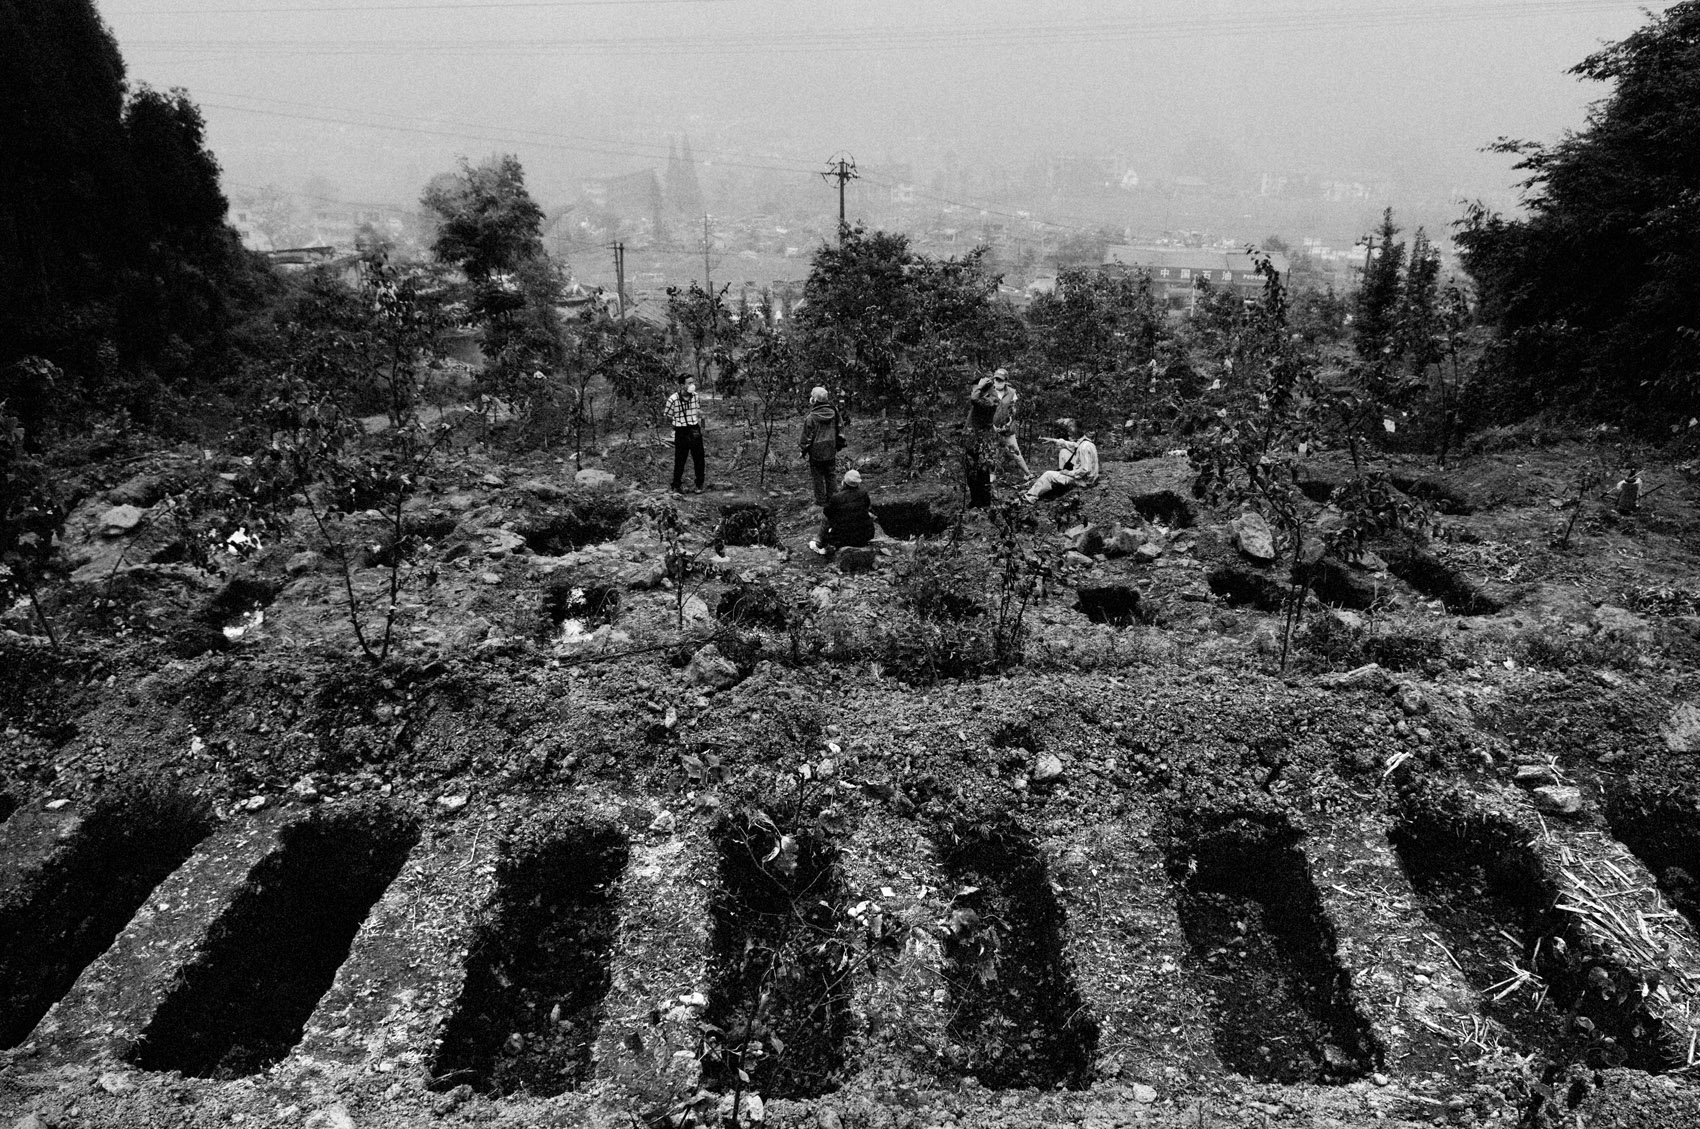 To bury the many victims of Hongbai, soldiers have digged graves on the hills overlooking the city.